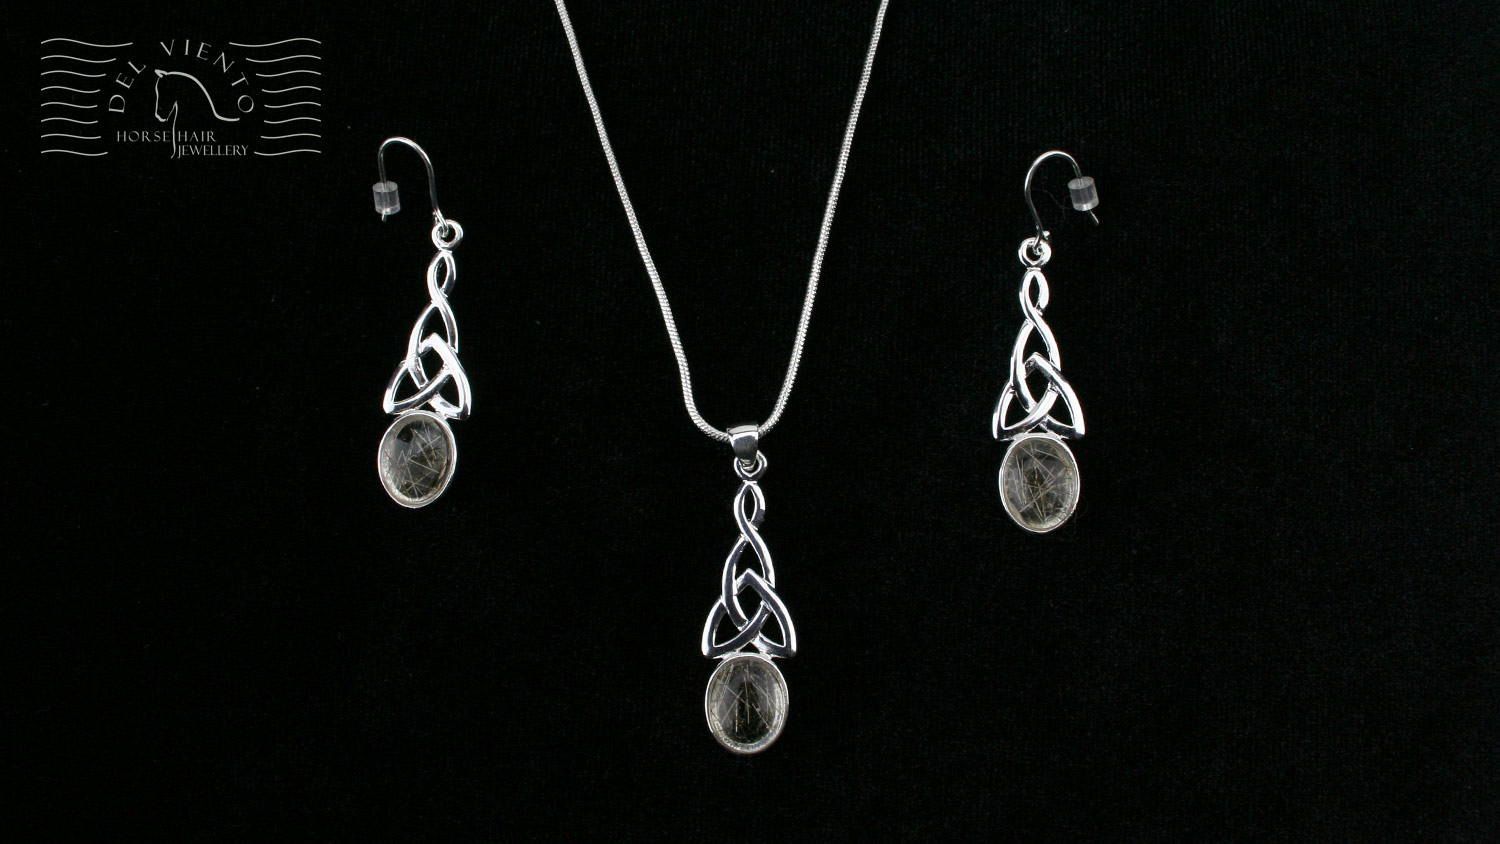 N38CAV Sterling Silver Celtic Twist Pendant and ER34CAV sterling silver earrings